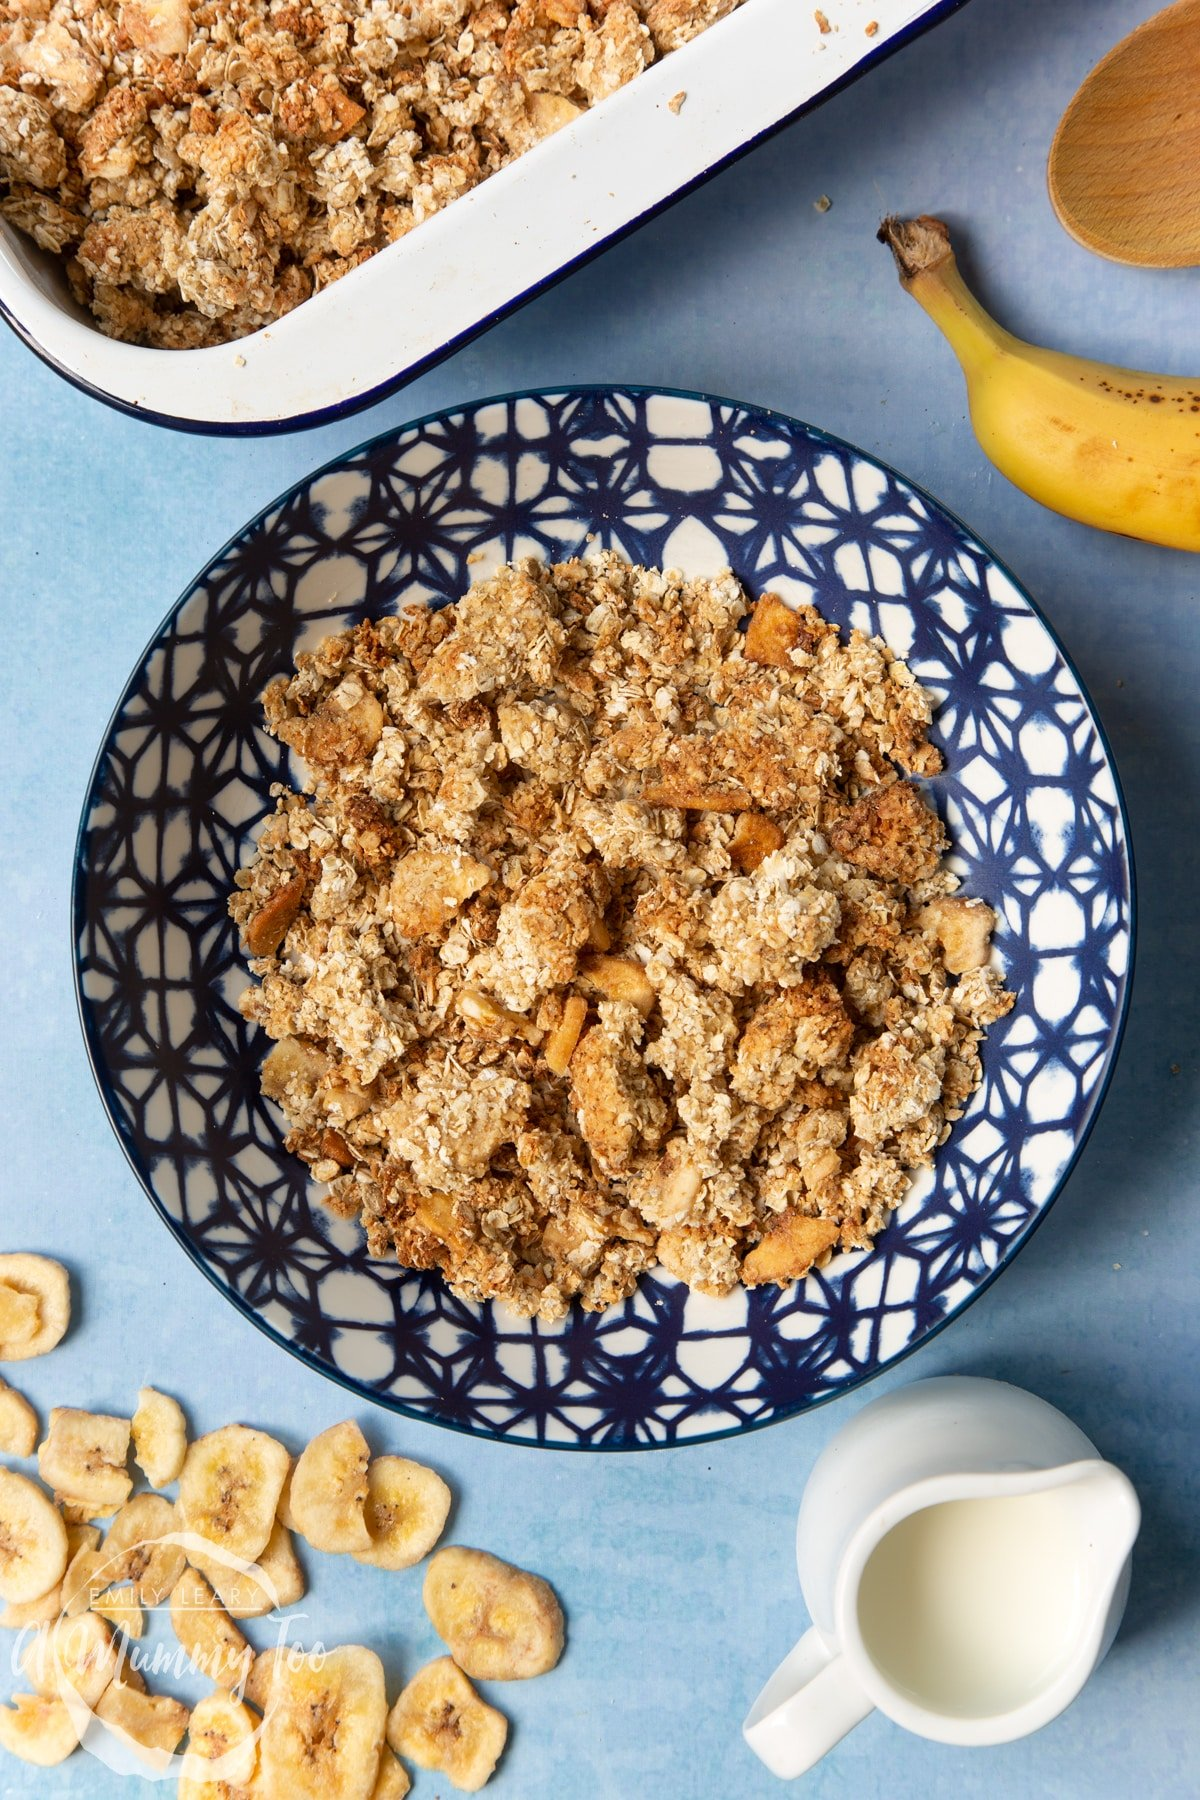 Banana coconut granola served in a blue and white bowl.